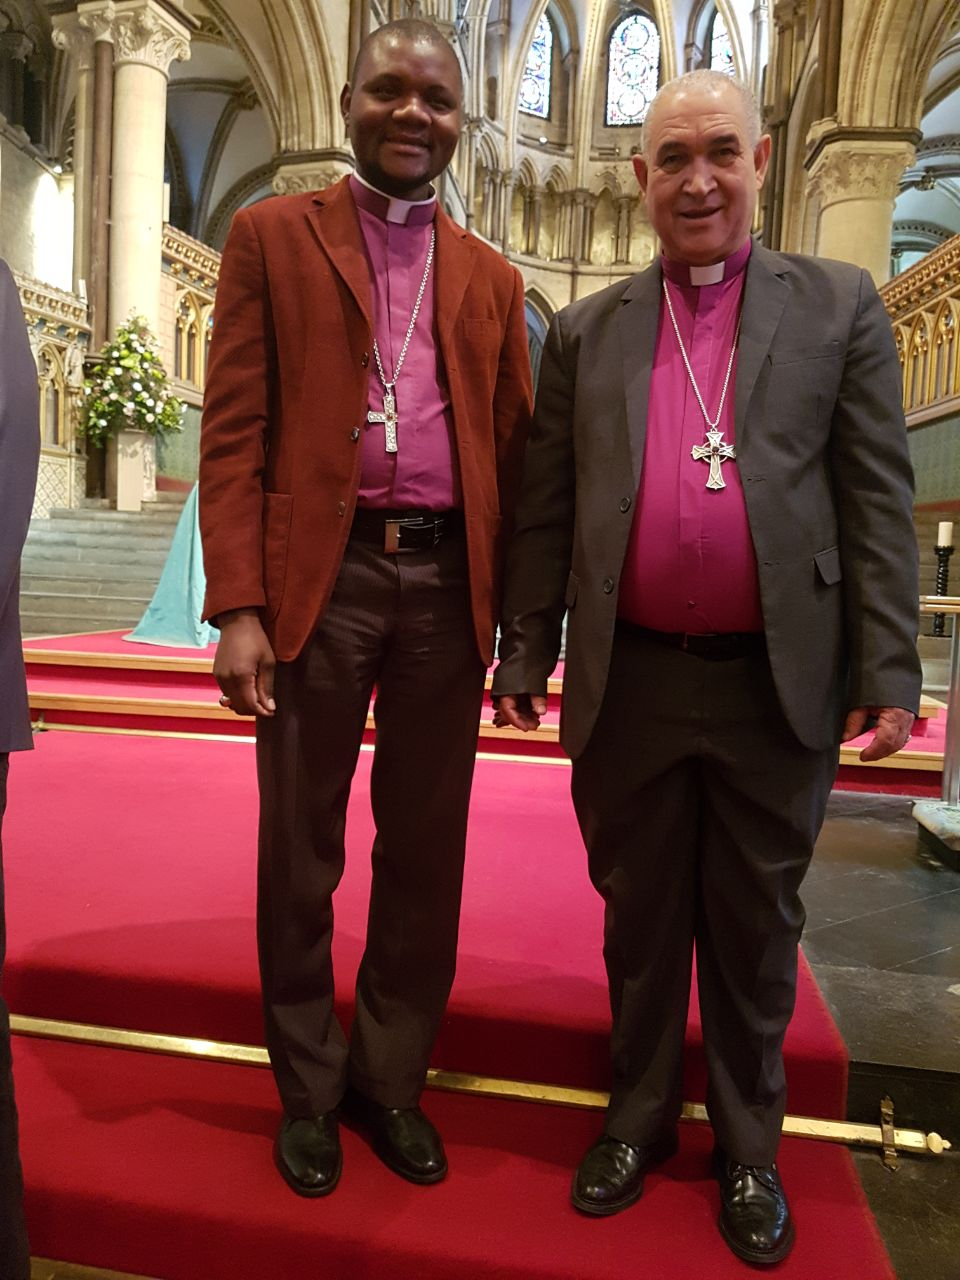 Bishops Vicente & William in Canterbury Cathedral